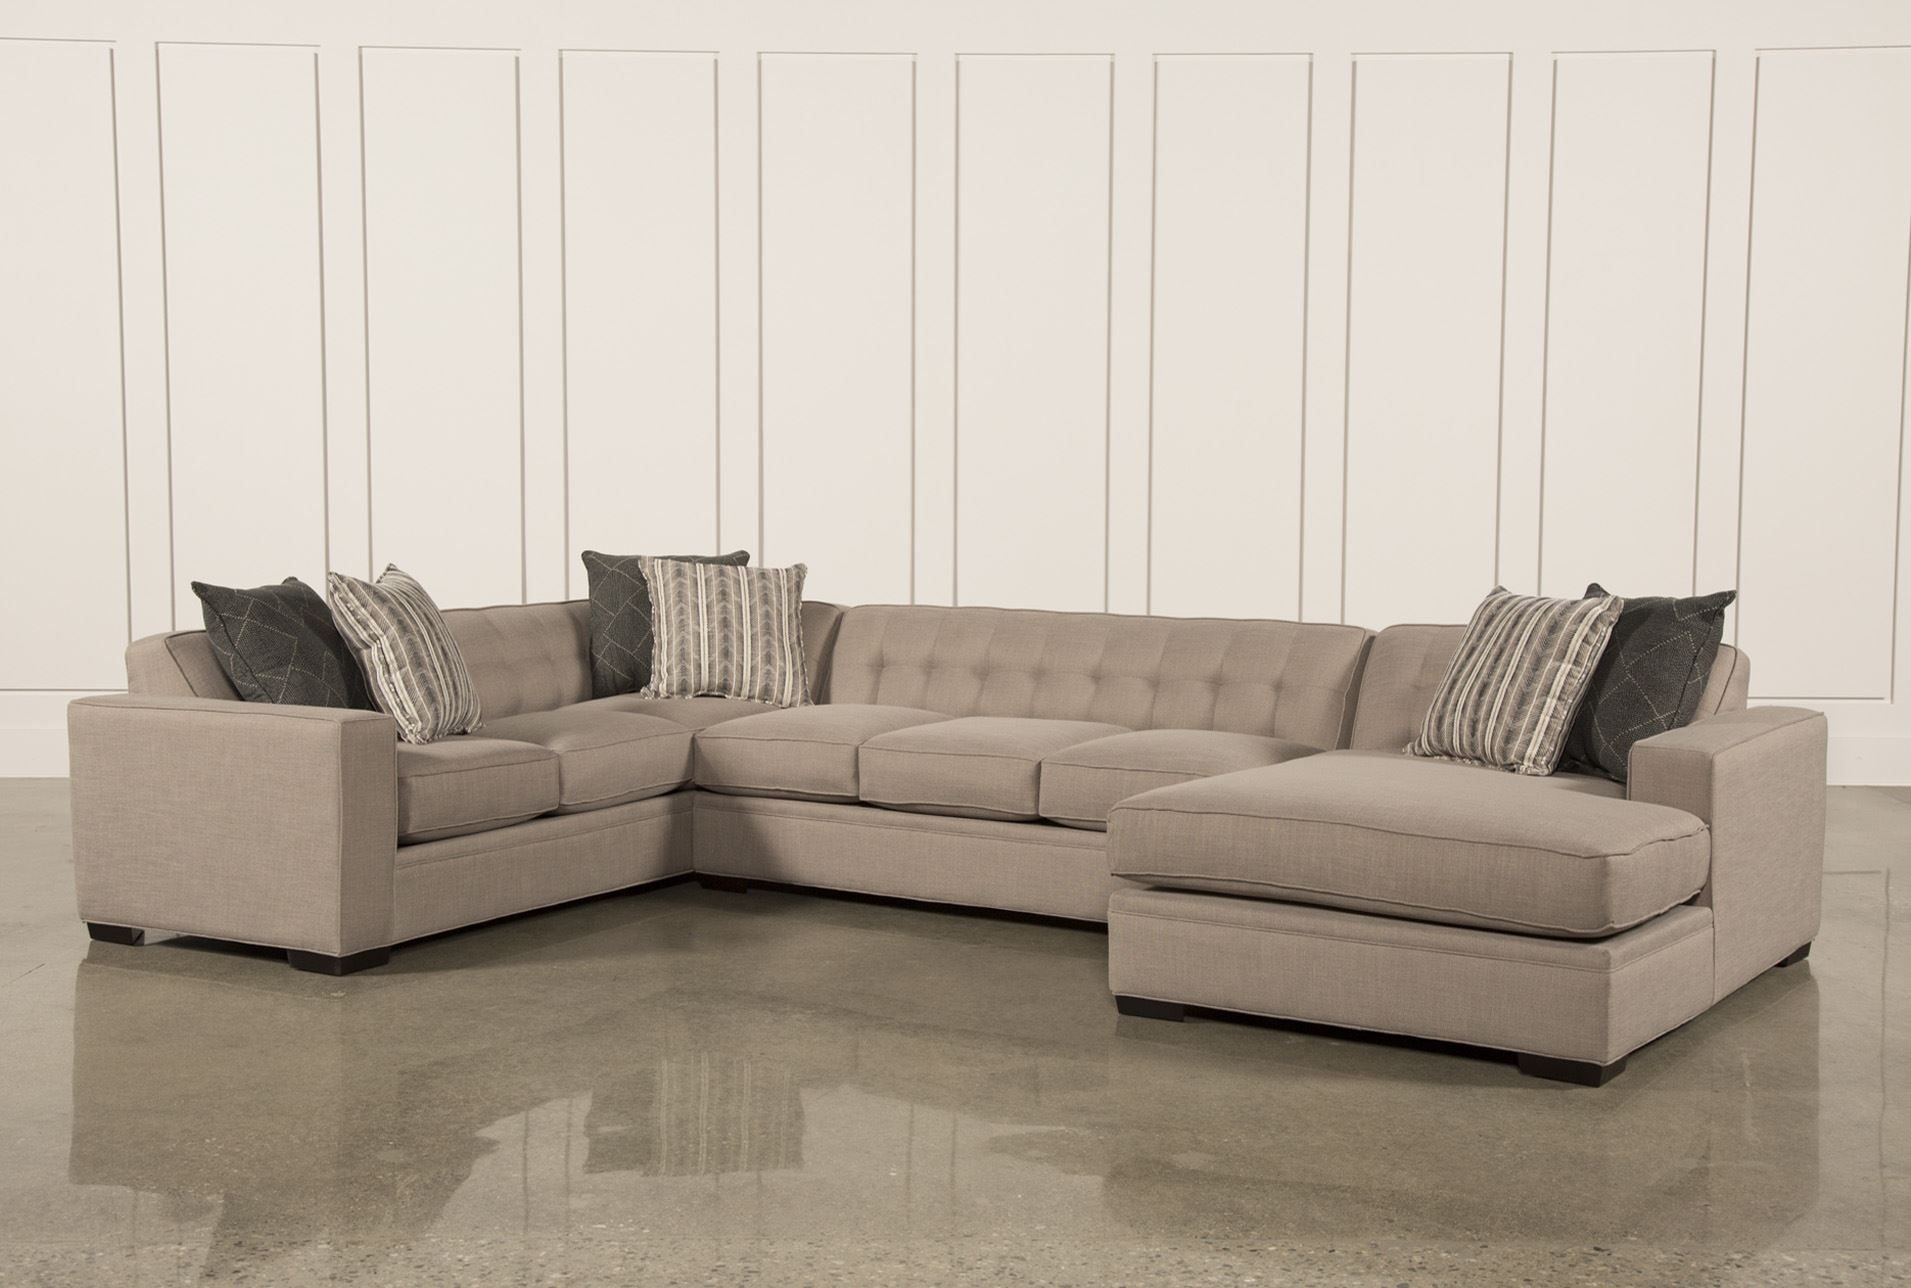 Corbin 3 Piece Sectional W/raf Chaise | New House: Loft | Pinterest Inside Norfolk Grey 6 Piece Sectionals With Laf Chaise (View 5 of 25)